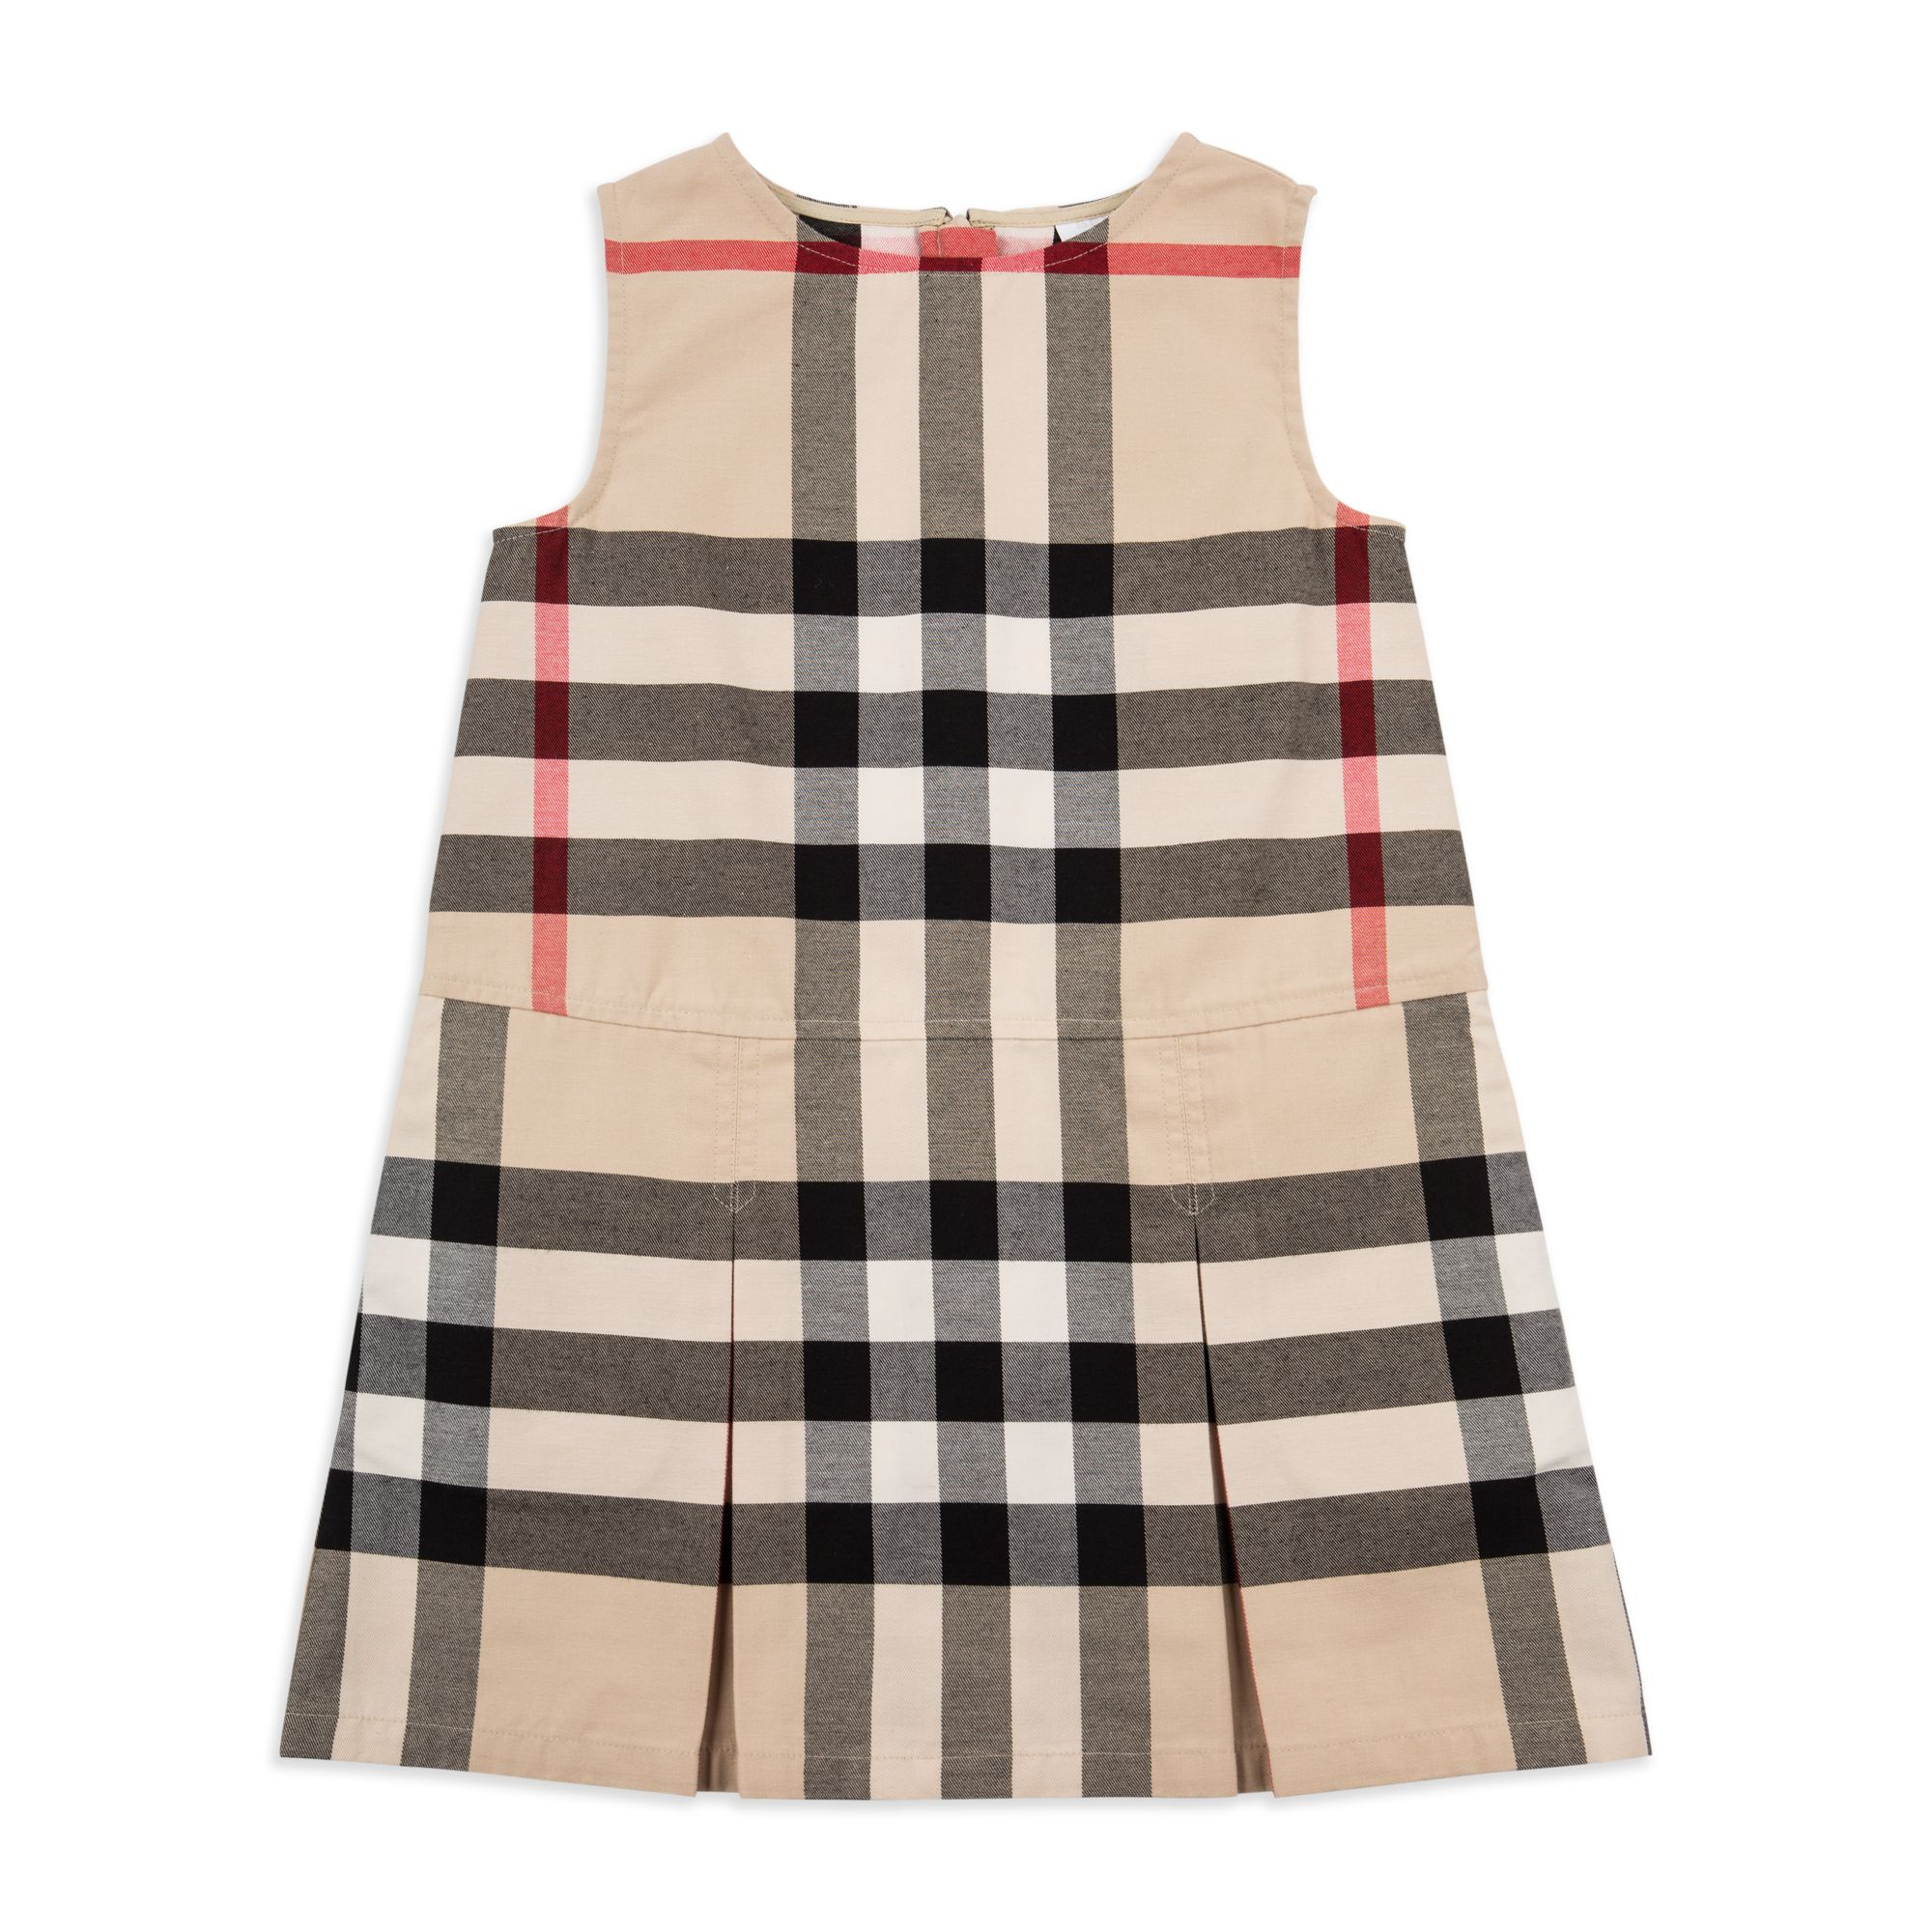 d57be96b042 Burberry - Girls  Dawney  Dress - Beige - Girls pinafore dress